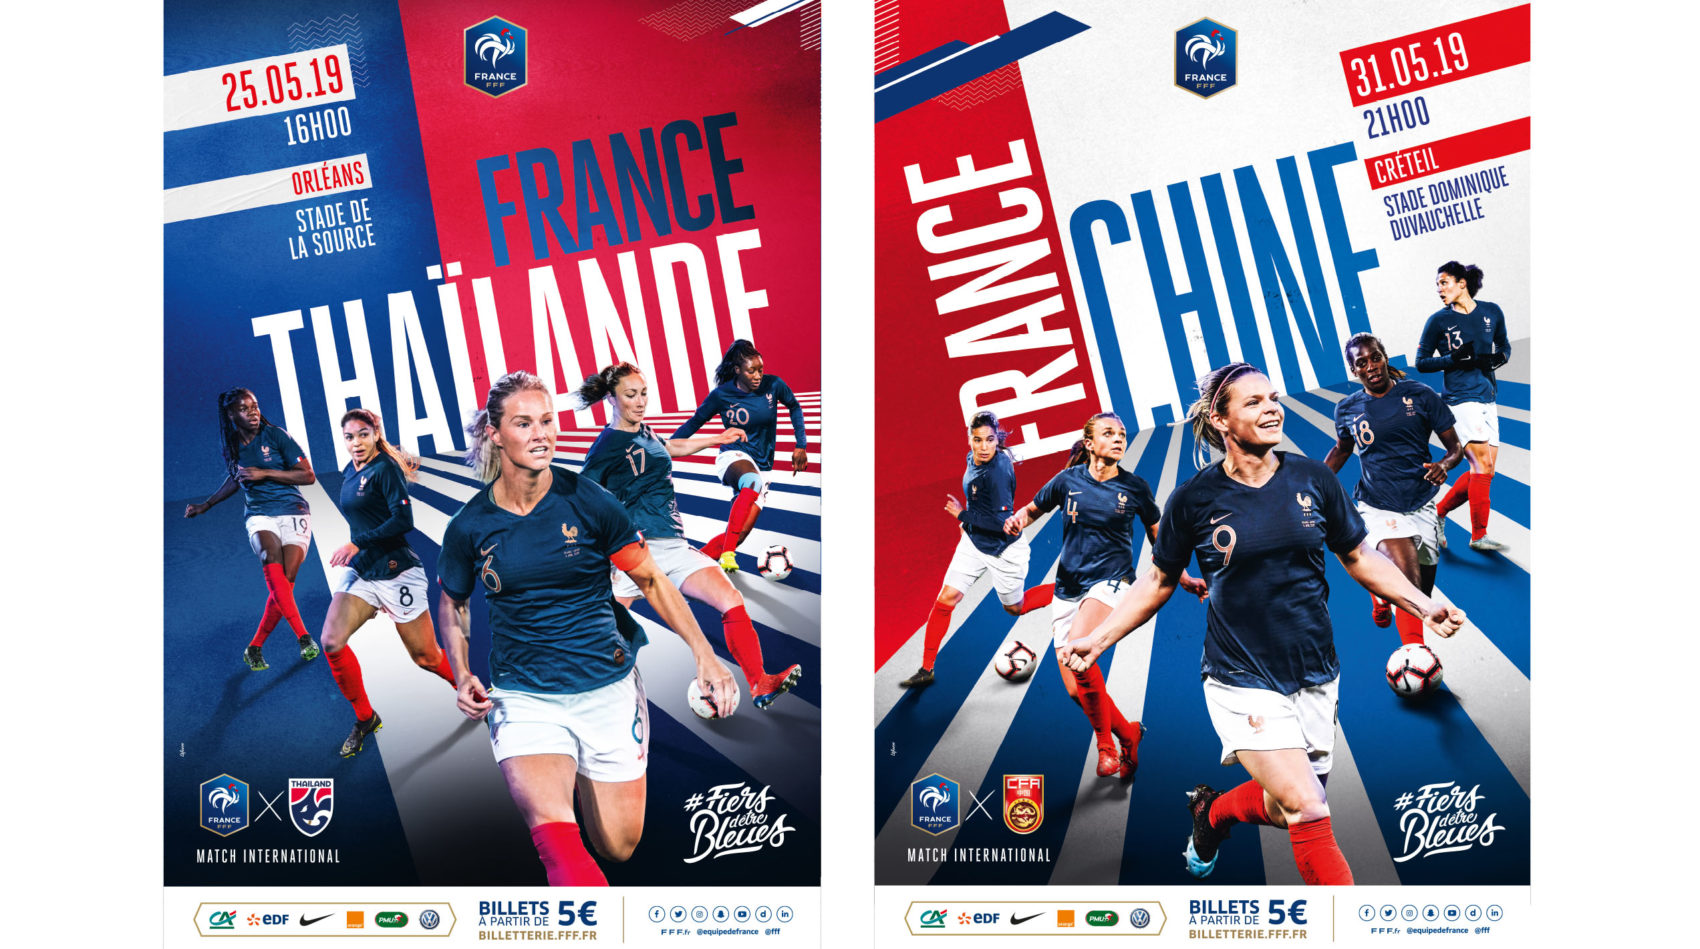 Projet_project_FFF_federation_francaise_football_french_federation_Coupe_du_Monde_Feminine_FIFA_France_2019_TM_world_cup_women_KV_2